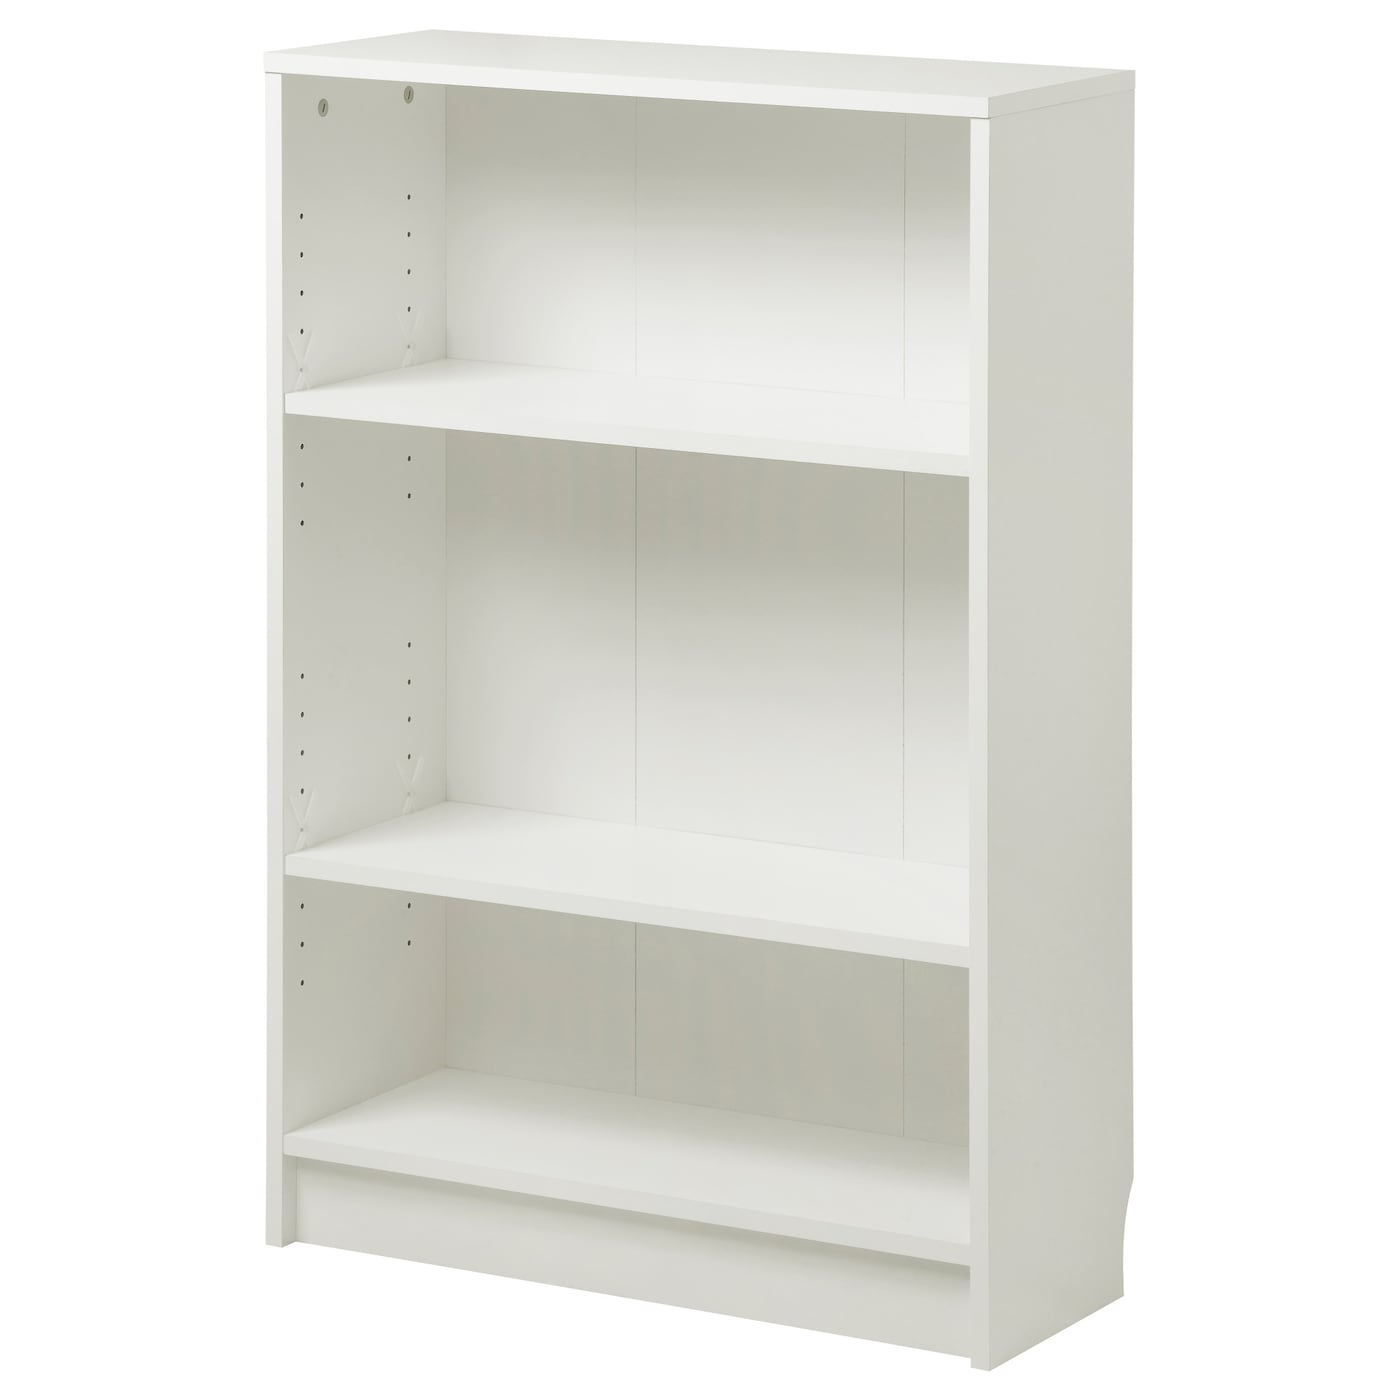 bookcases  white bookcases  ikea - ikea avdala bookcase